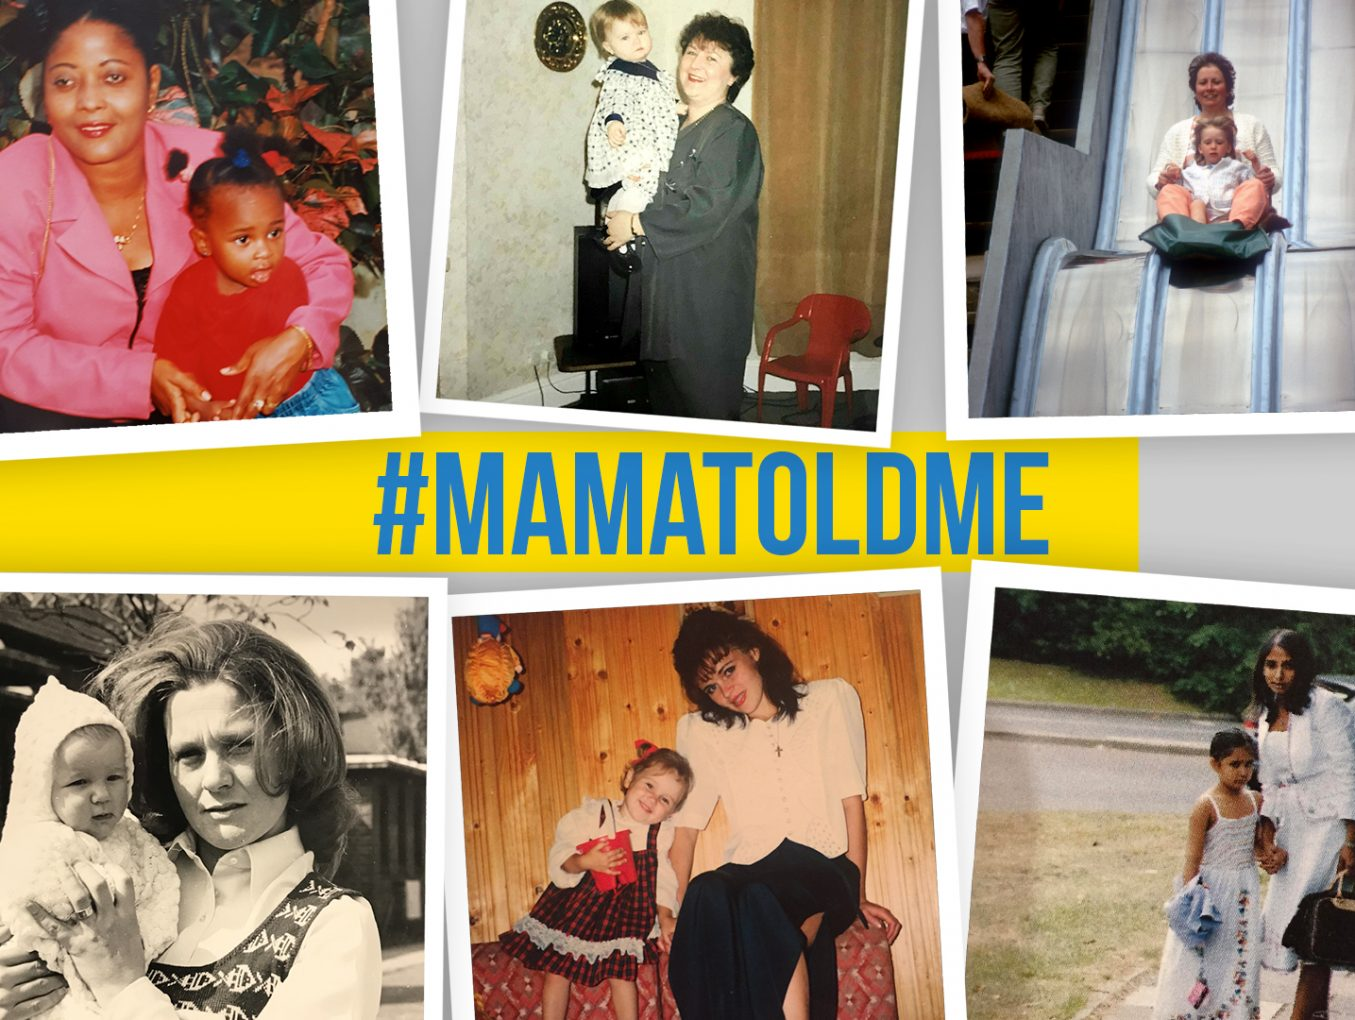 MOTHER'S DAY #MAMATOLDME